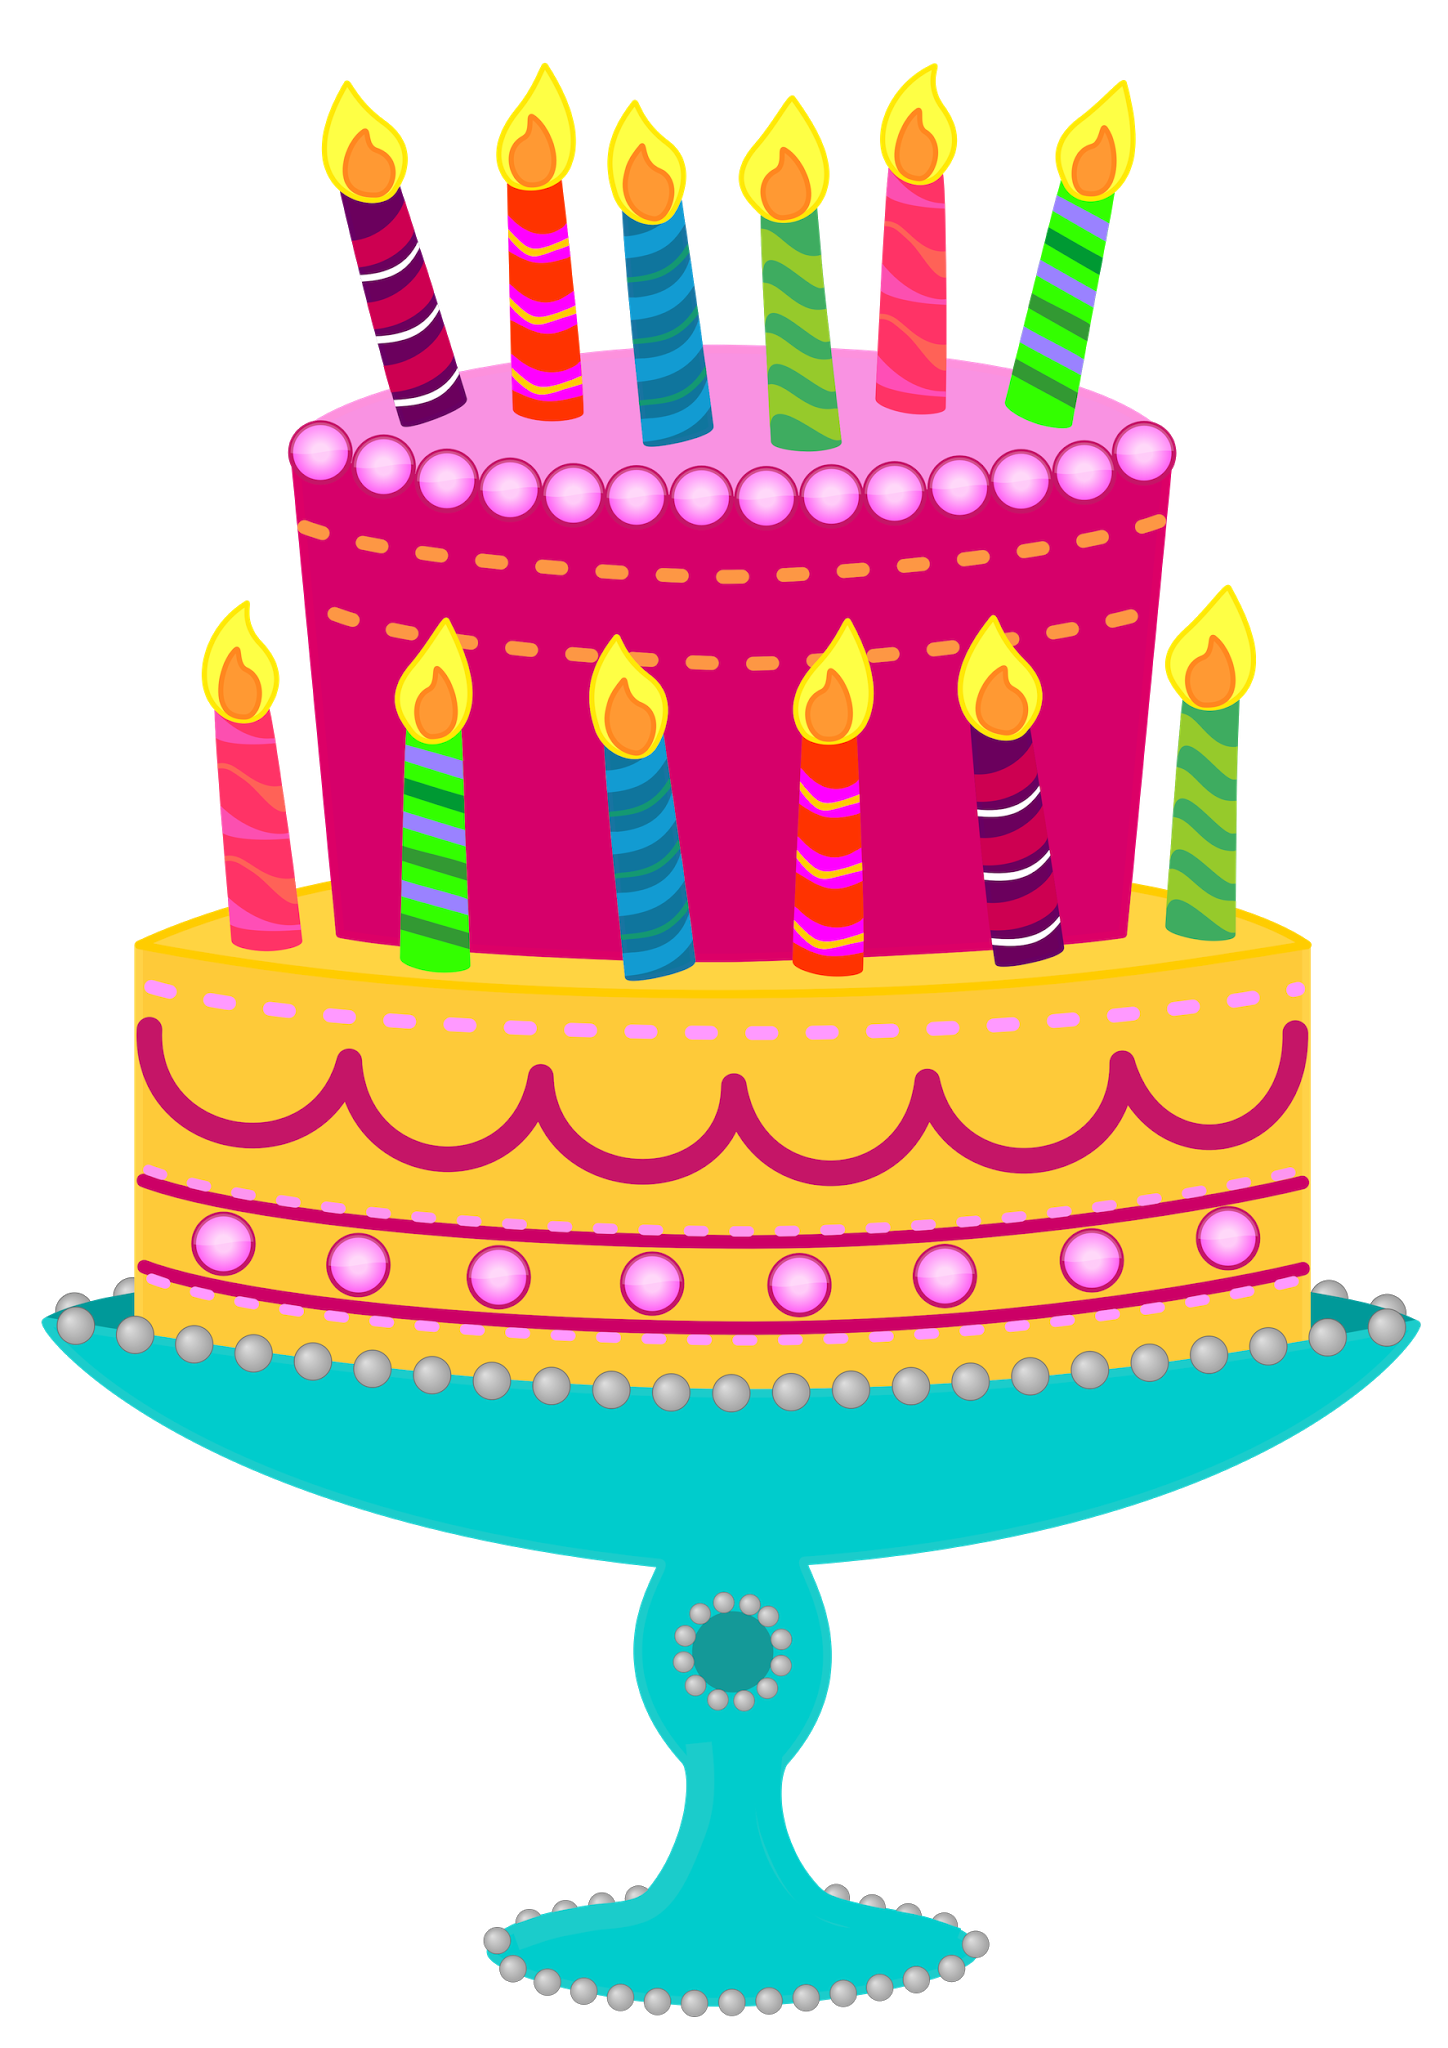 birthday cake clipart-birthday cake clipart-5